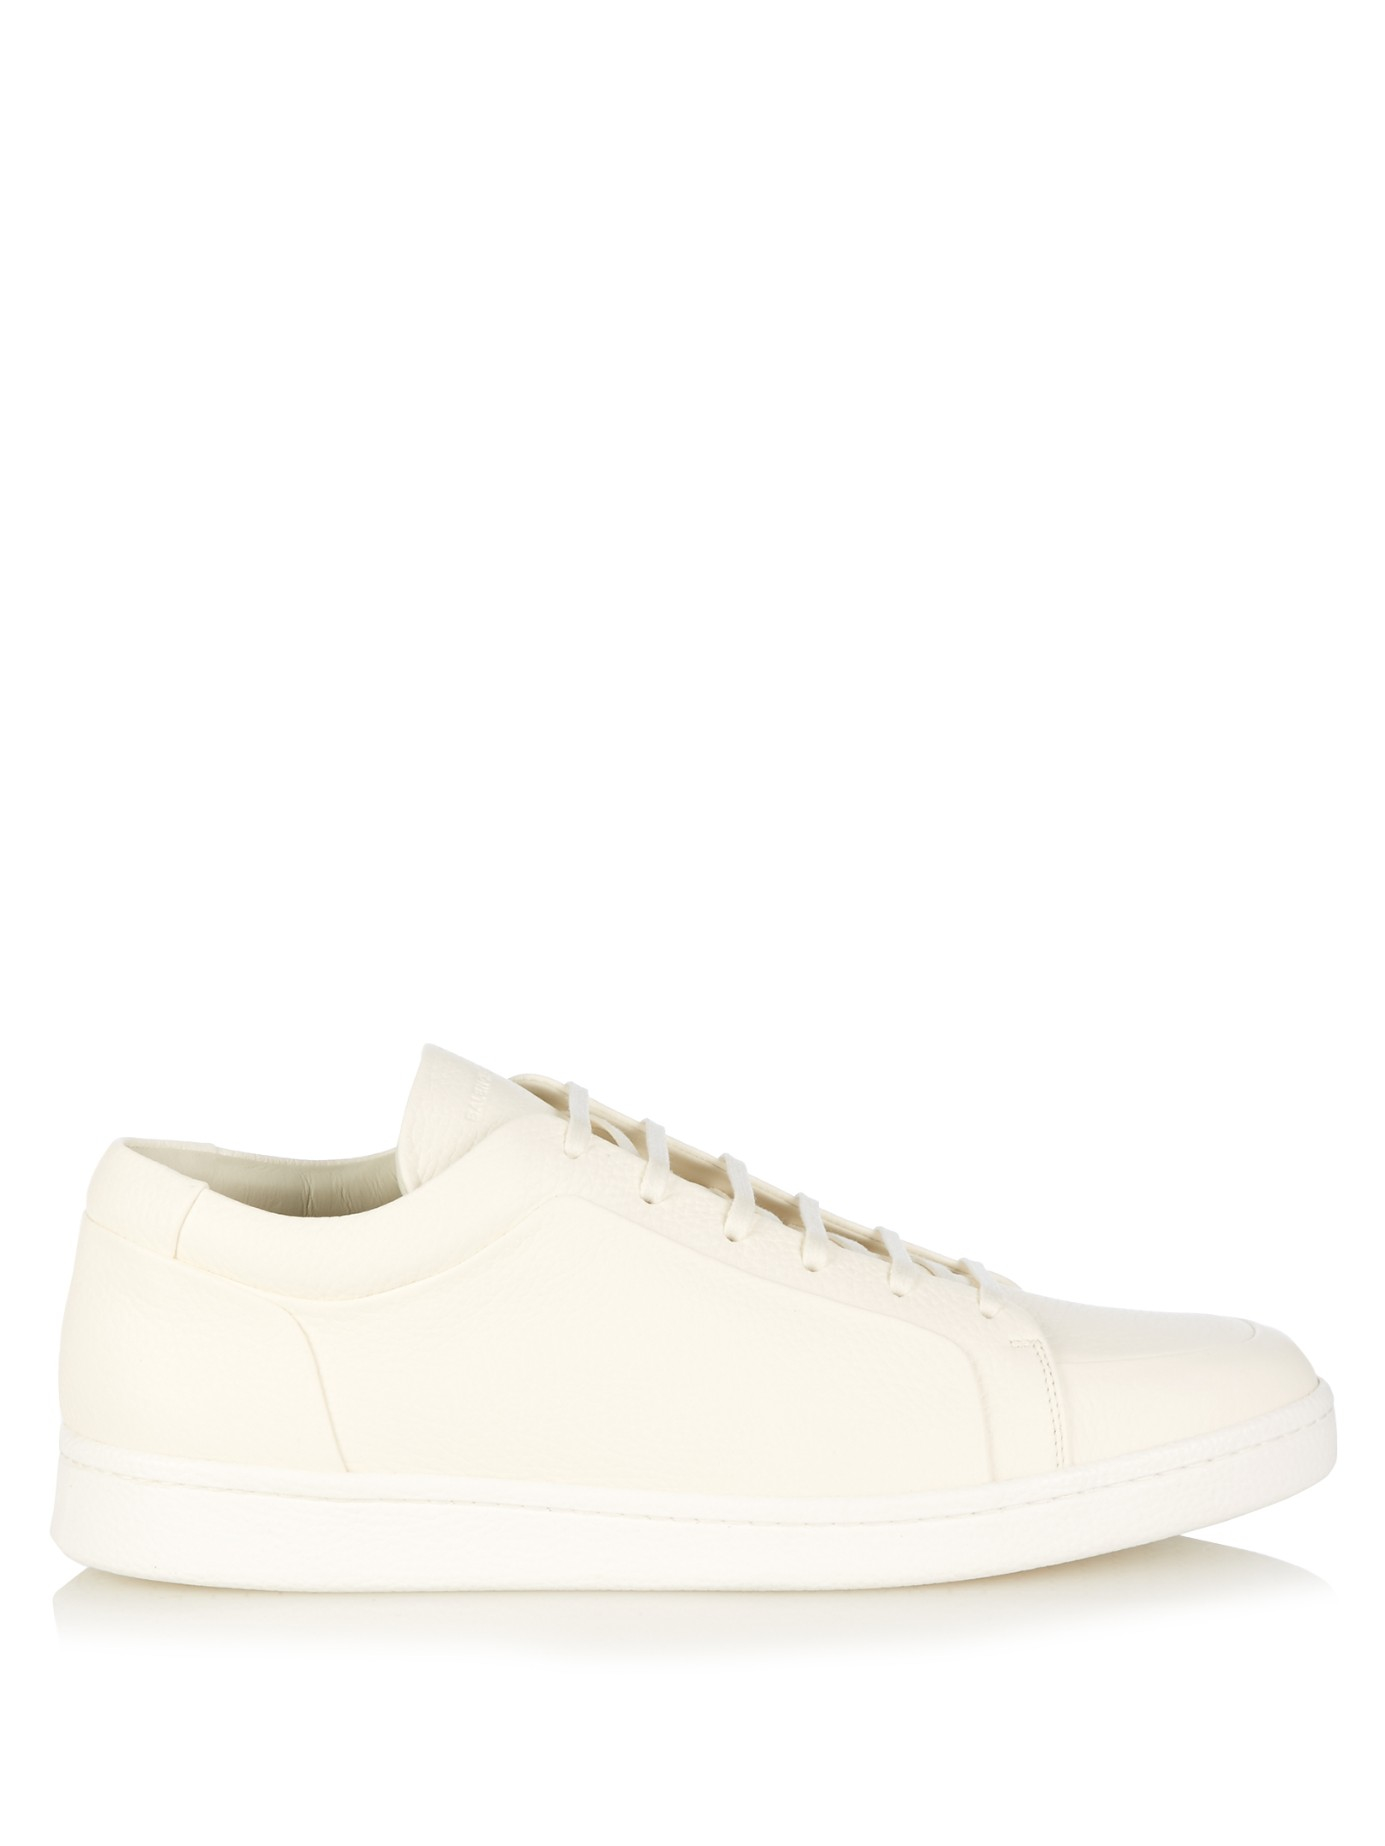 fa5bf7d5049b Lyst - Balenciaga Urban Low-top Leather Trainers in White for Men